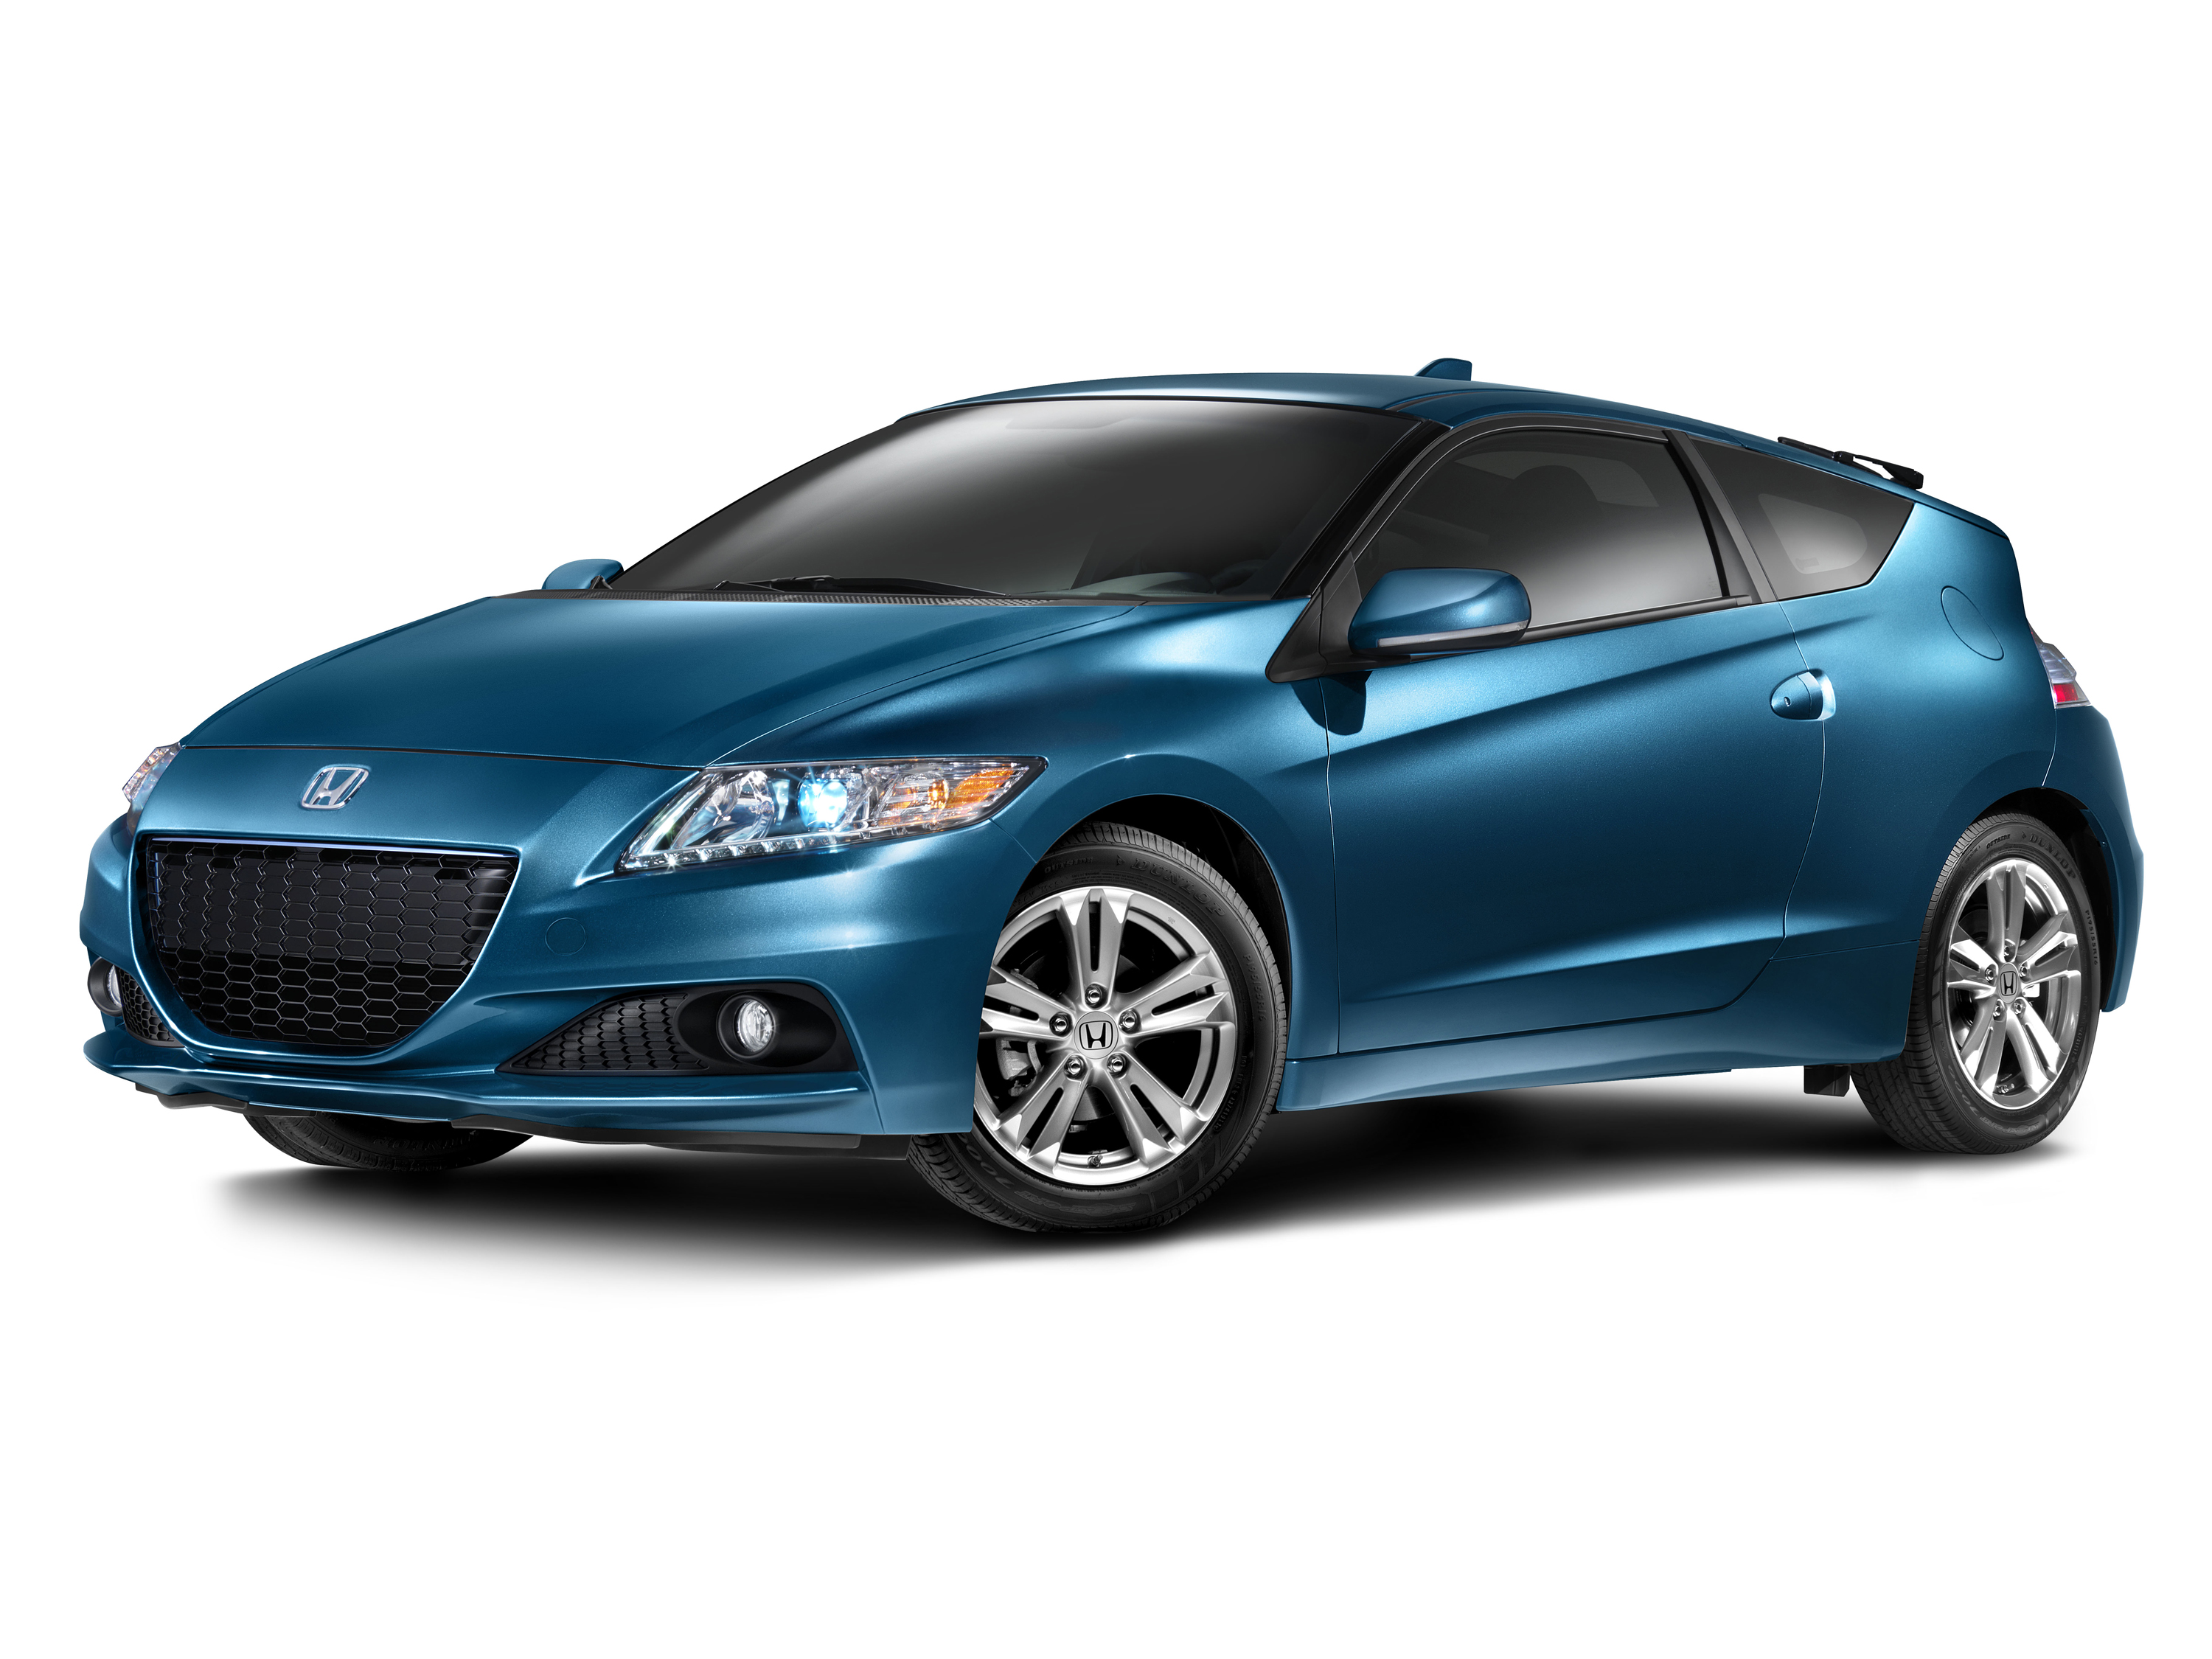 honda cr z hybrid coupe gets huge sales incentive update. Black Bedroom Furniture Sets. Home Design Ideas